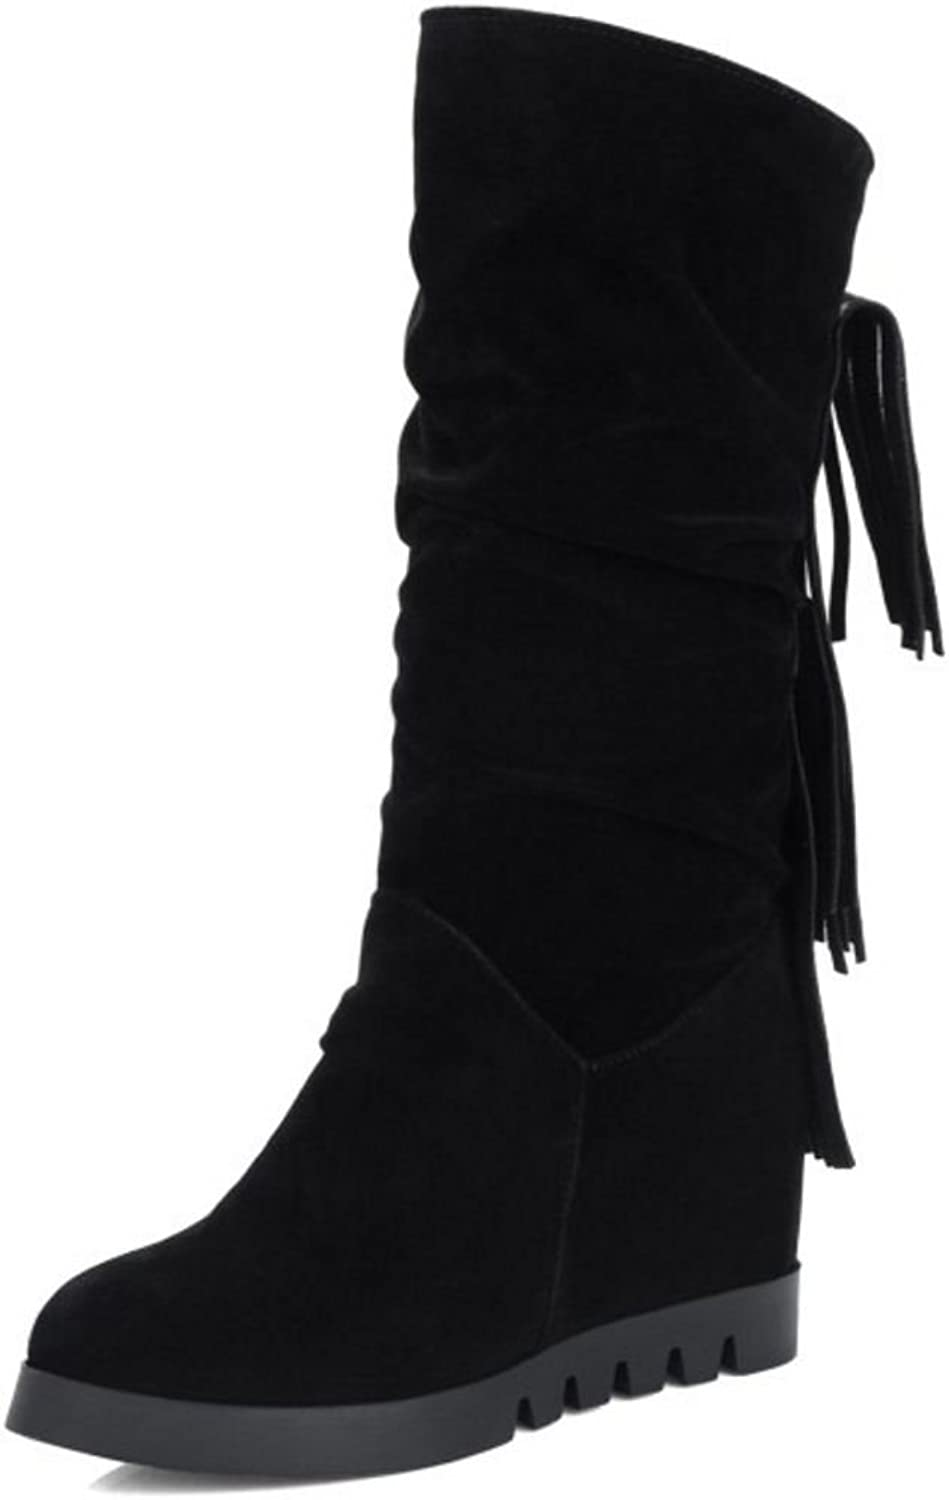 AicciAizzi Women Casual Fringe Boots Round Toe Slip On